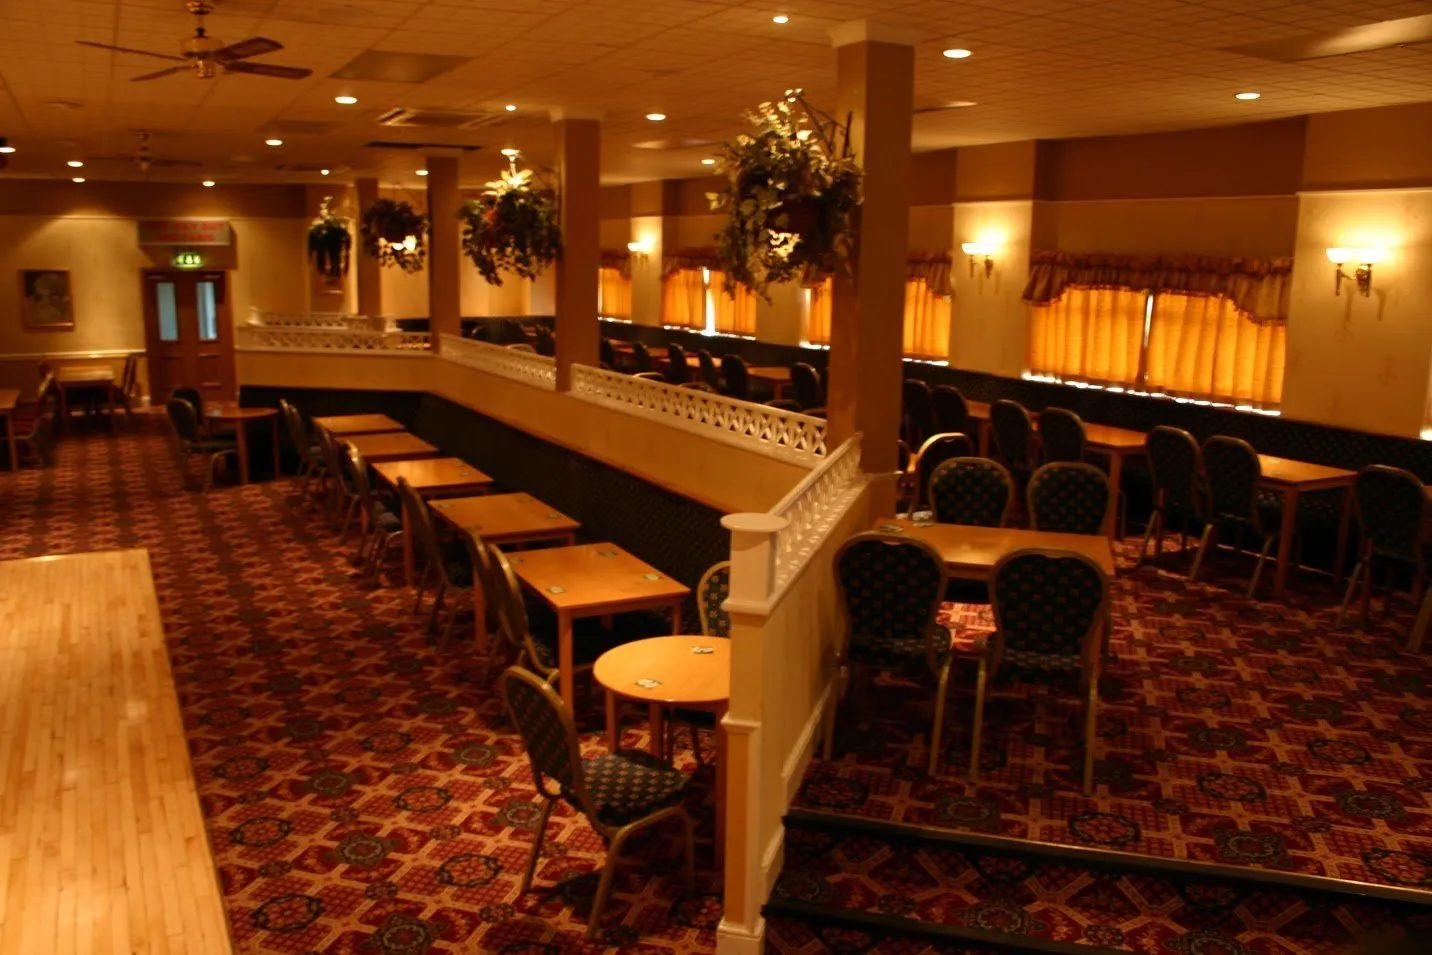 Standard Triumph Club function room with higher tier tables and chairs